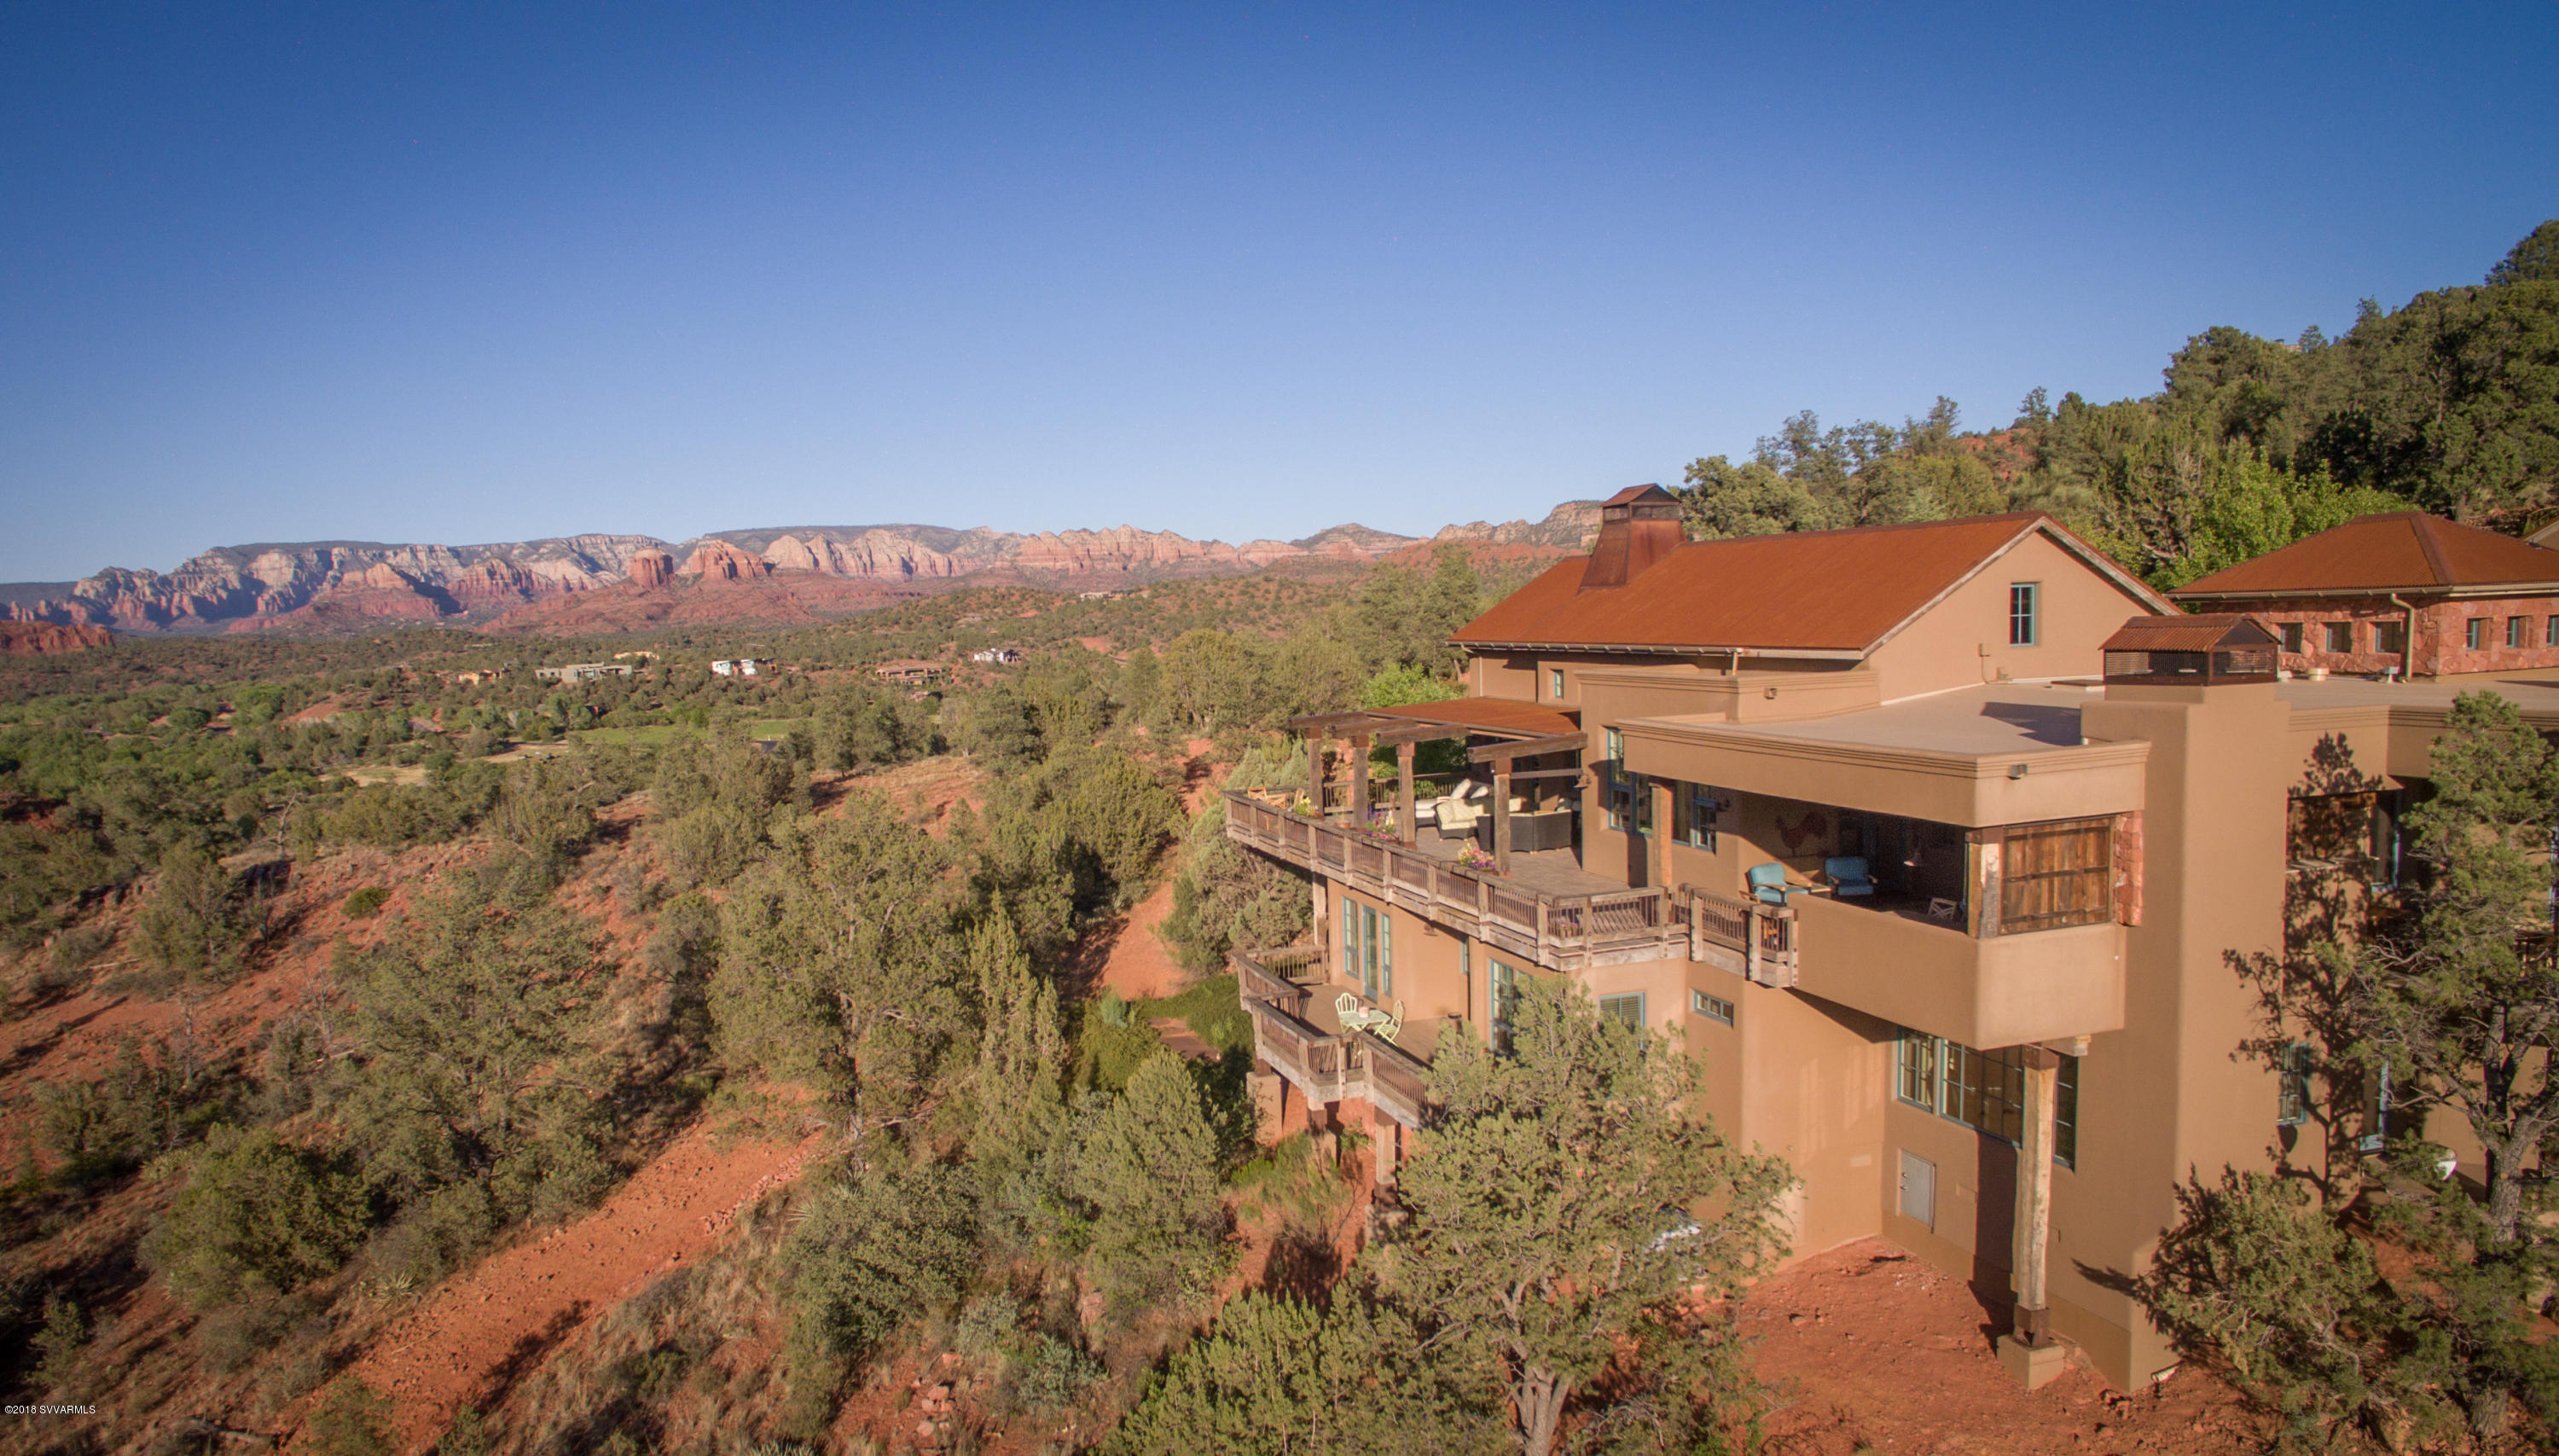 Photo of 700 Eagle Mountain Ranch Rd, Sedona, AZ 86336